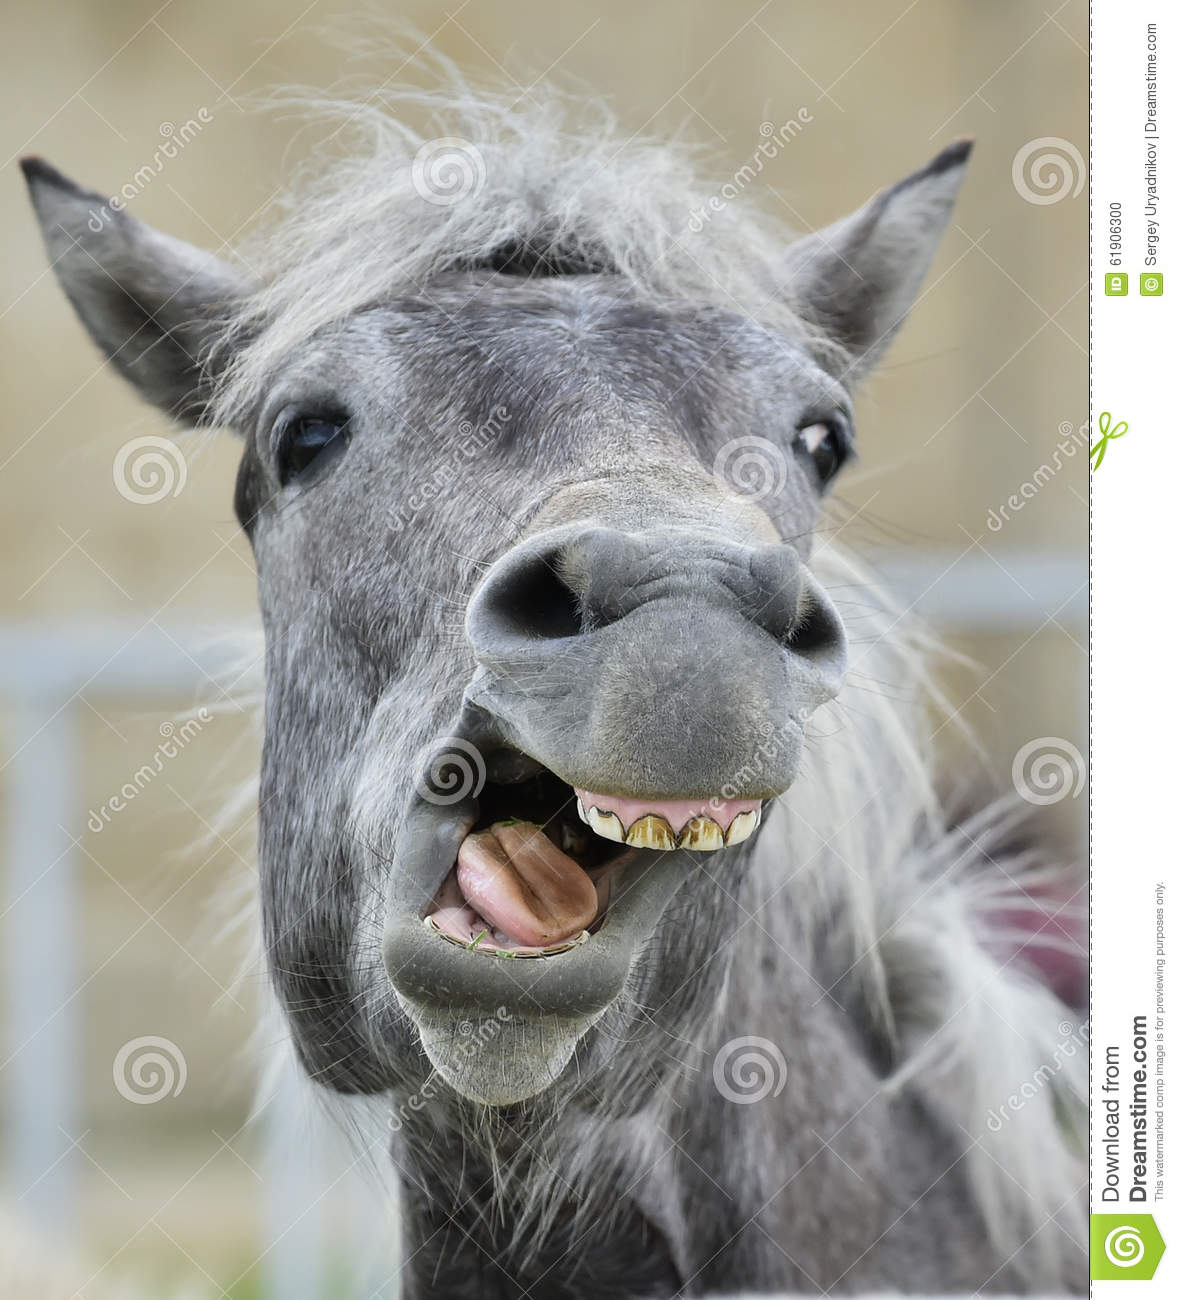 316 Funny Portrait Laughing Horse Photos Free Royalty Free Stock Photos From Dreamstime